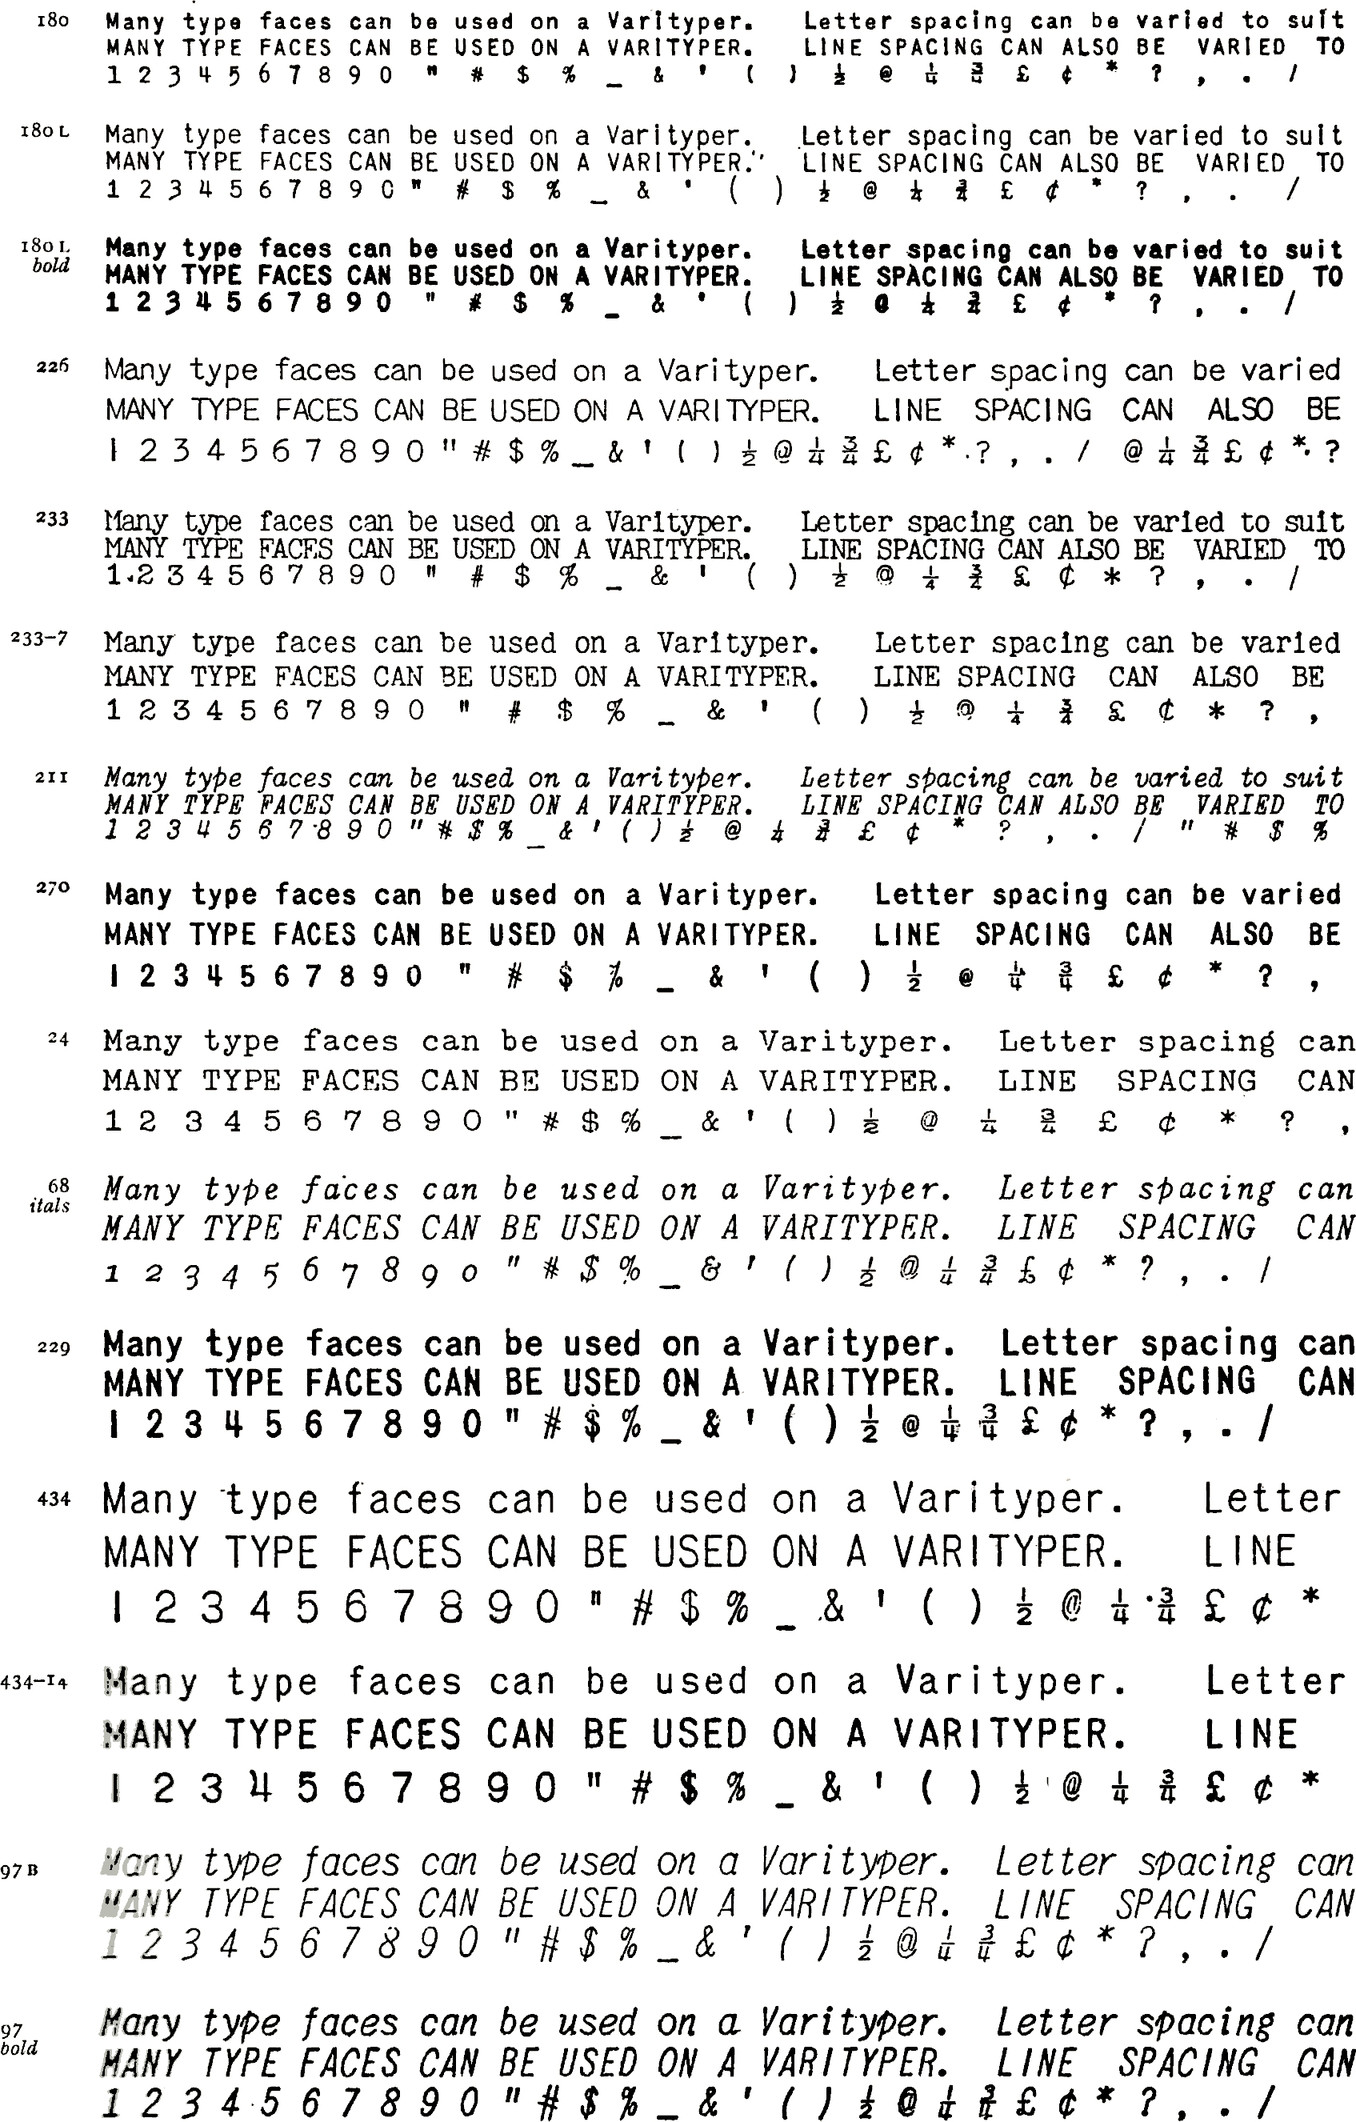 """Lots of typefaces with the same example text: Many type faces can be used on a Varityper. Letter spacing can varied. (Then the same again in full caps). 1 2 3 4 5 6 7 8 9 0 """" # $% & ' () 1/2 @ 1/4 3/4 £ ¢ * ? ,. Letters have consistent thickness."""